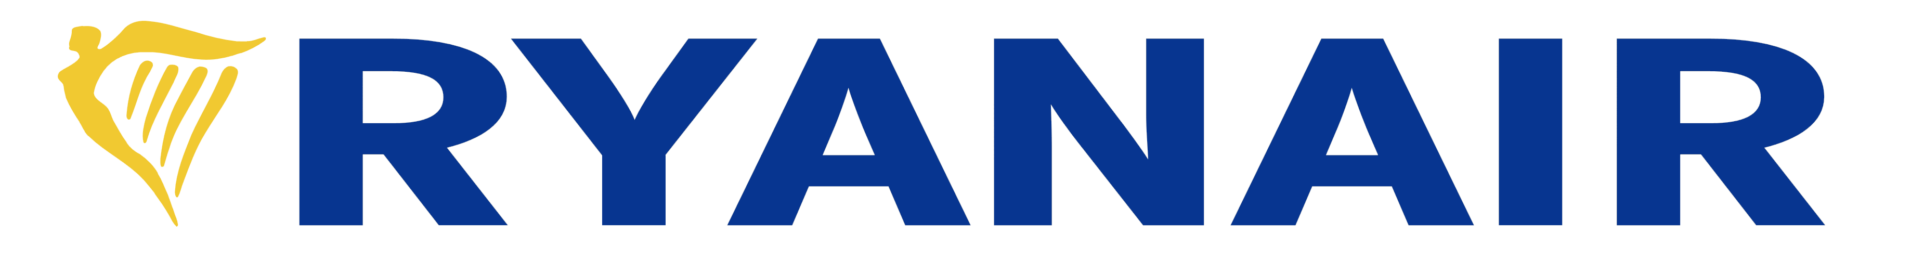 ryanair-logo AT Internet analytics case study